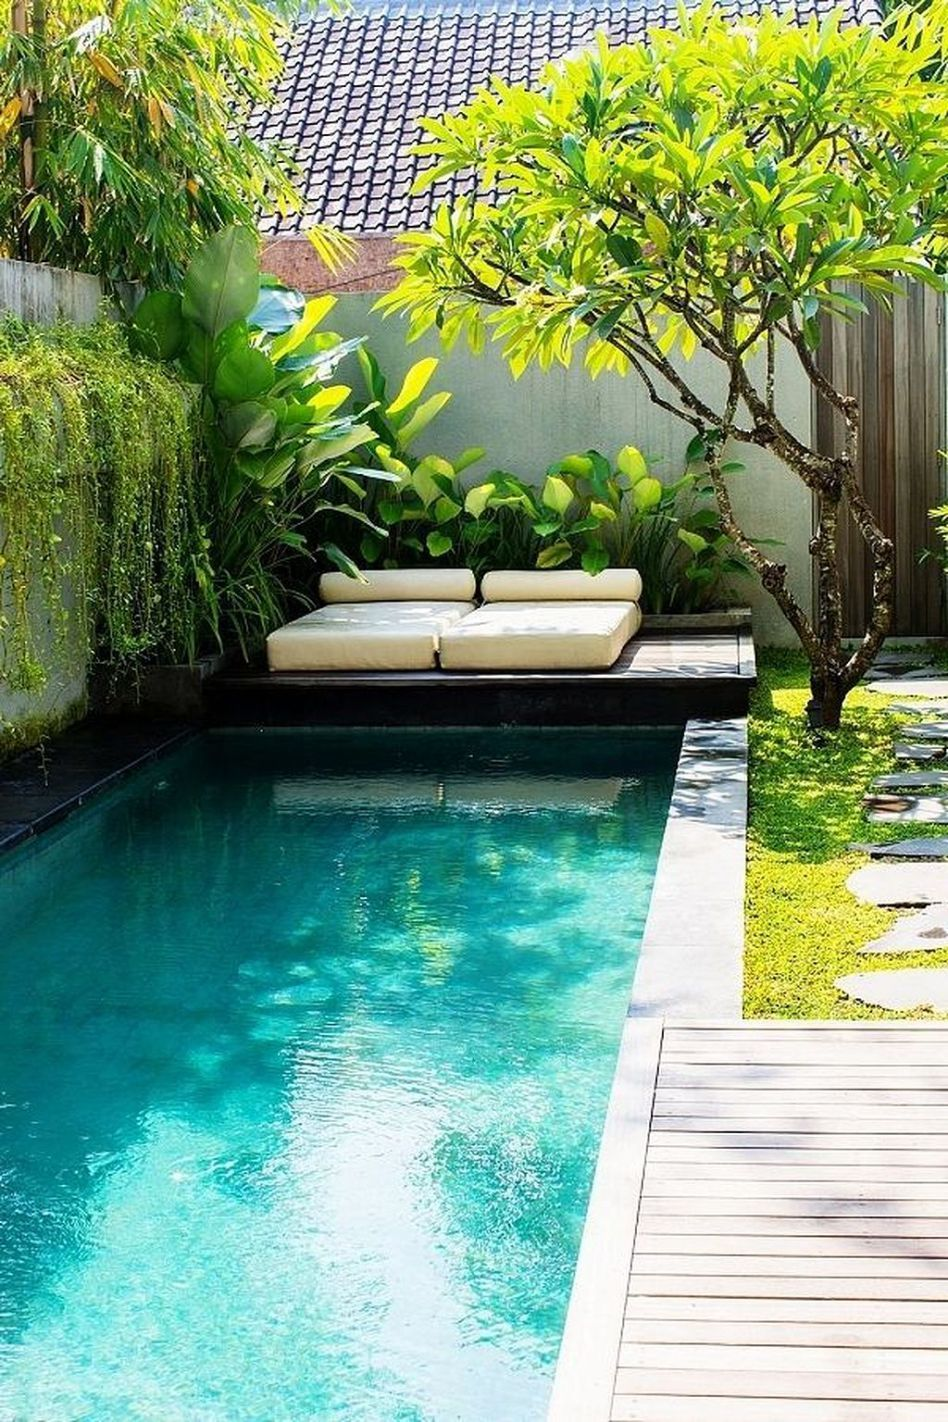 Jacuzzi Pool Ideas Fabulous Small Pool Design Ideas For Your Small Yard 13 Pool